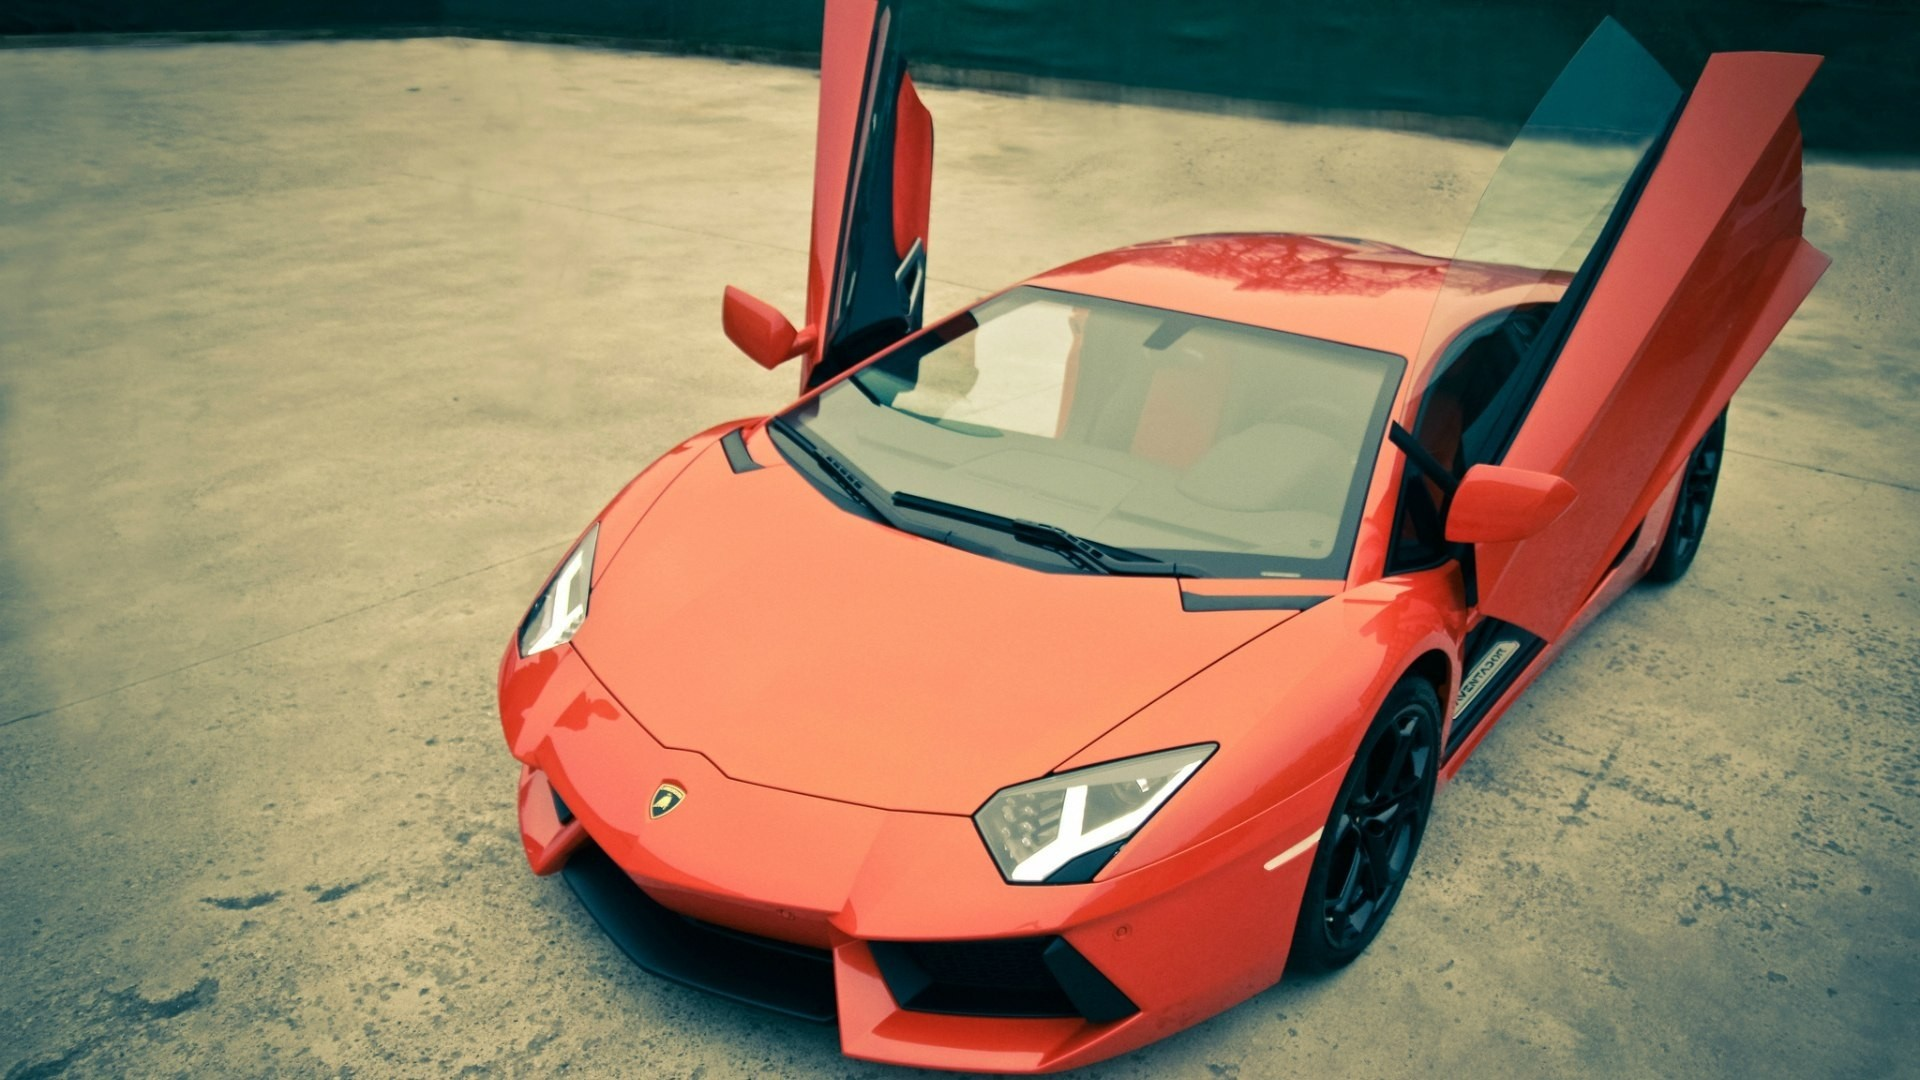 1920x1080 ... Background Full HD 1080p.  Wallpaper cars, style, lamborghini